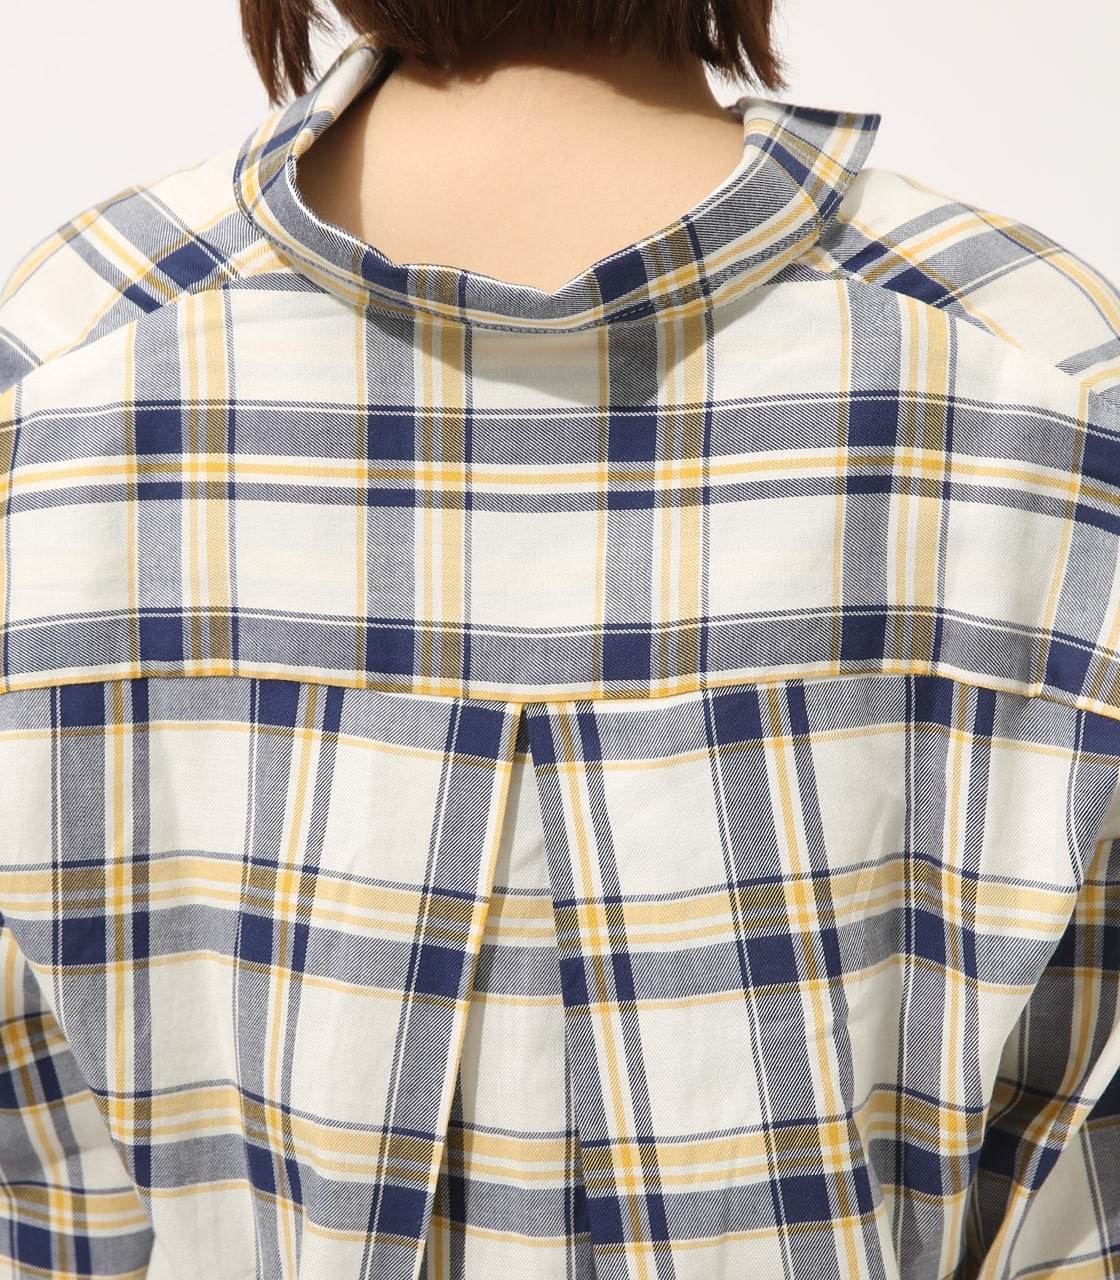 【AZUL BY MOUSSY】MADRAS CHECK SHIRT【MOOK50掲載 90135】 詳細画像 柄WHT 8